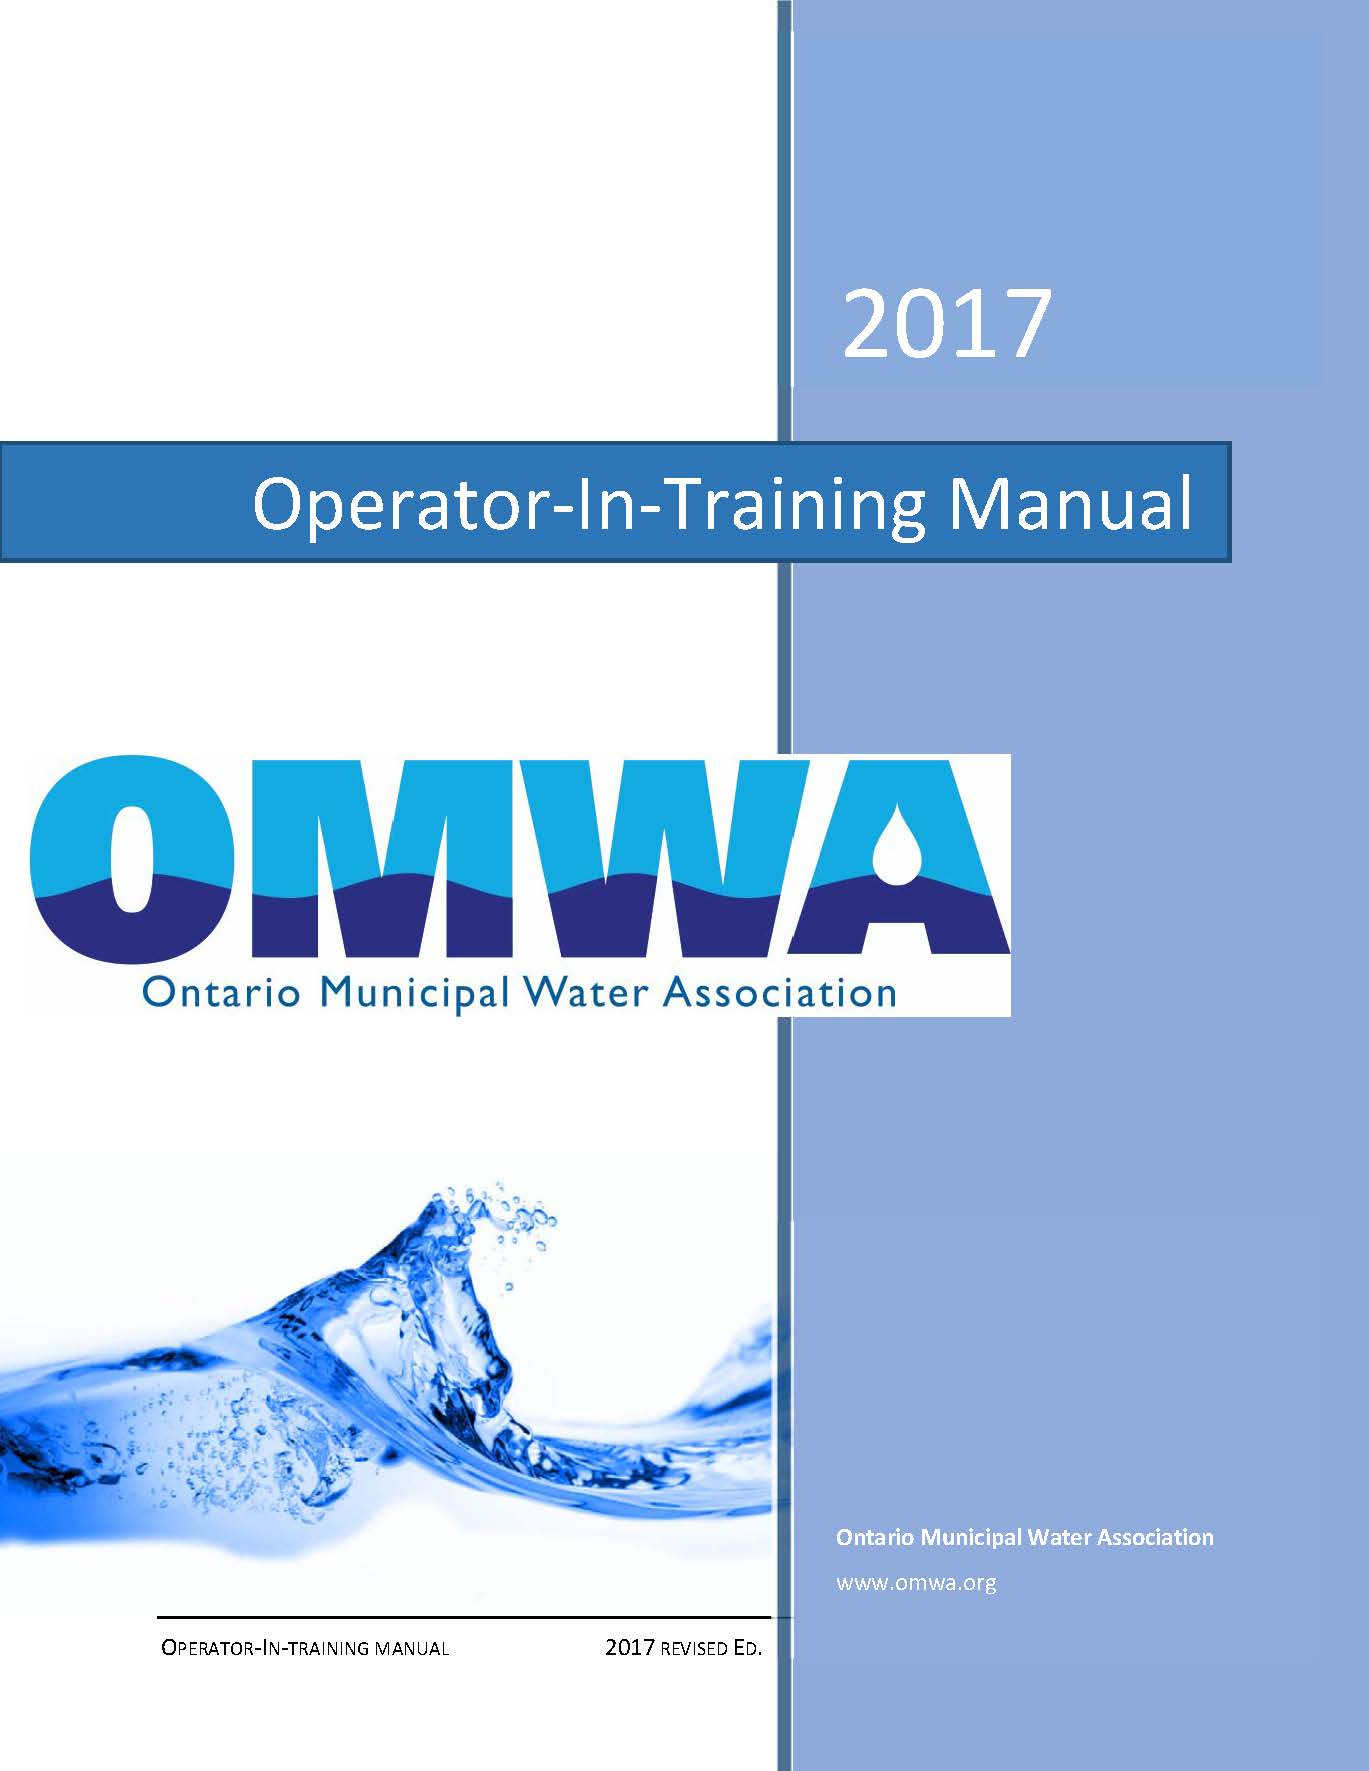 Revised OIT manual